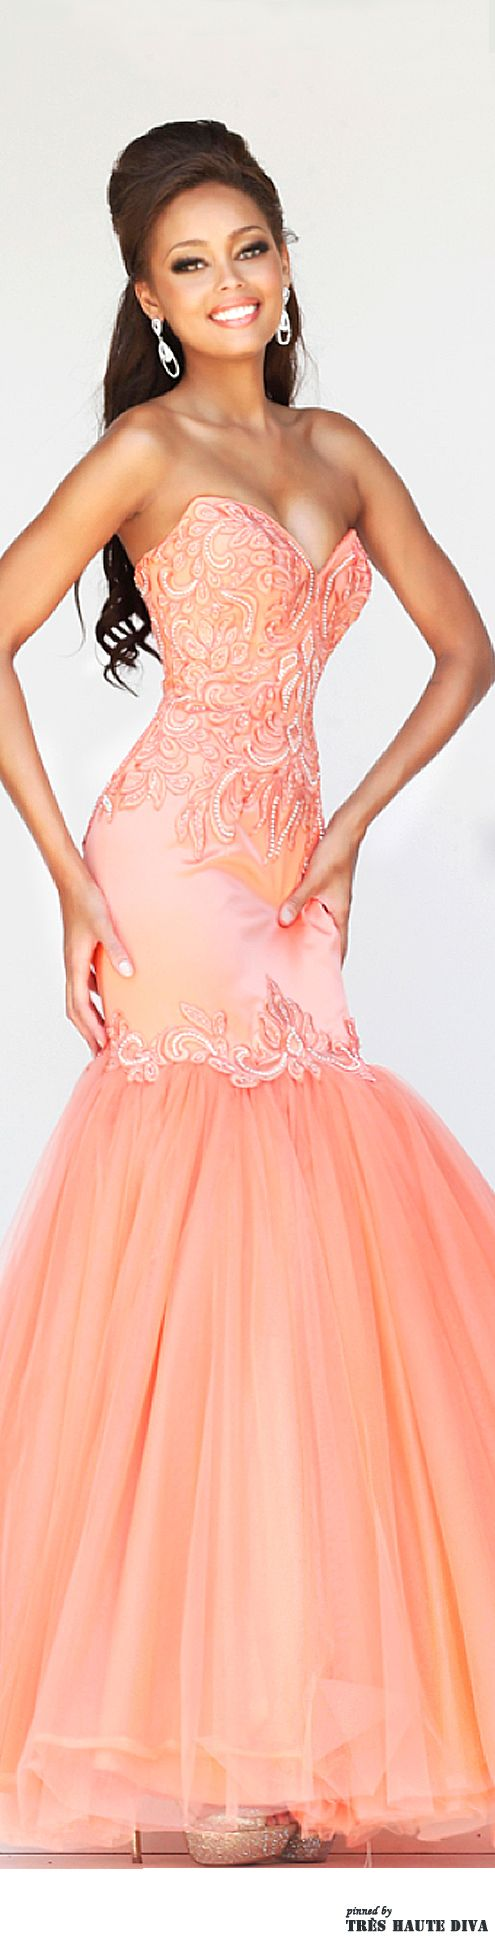 I love this for a teen pageant. #prom dress,evening dress cocktail dress…